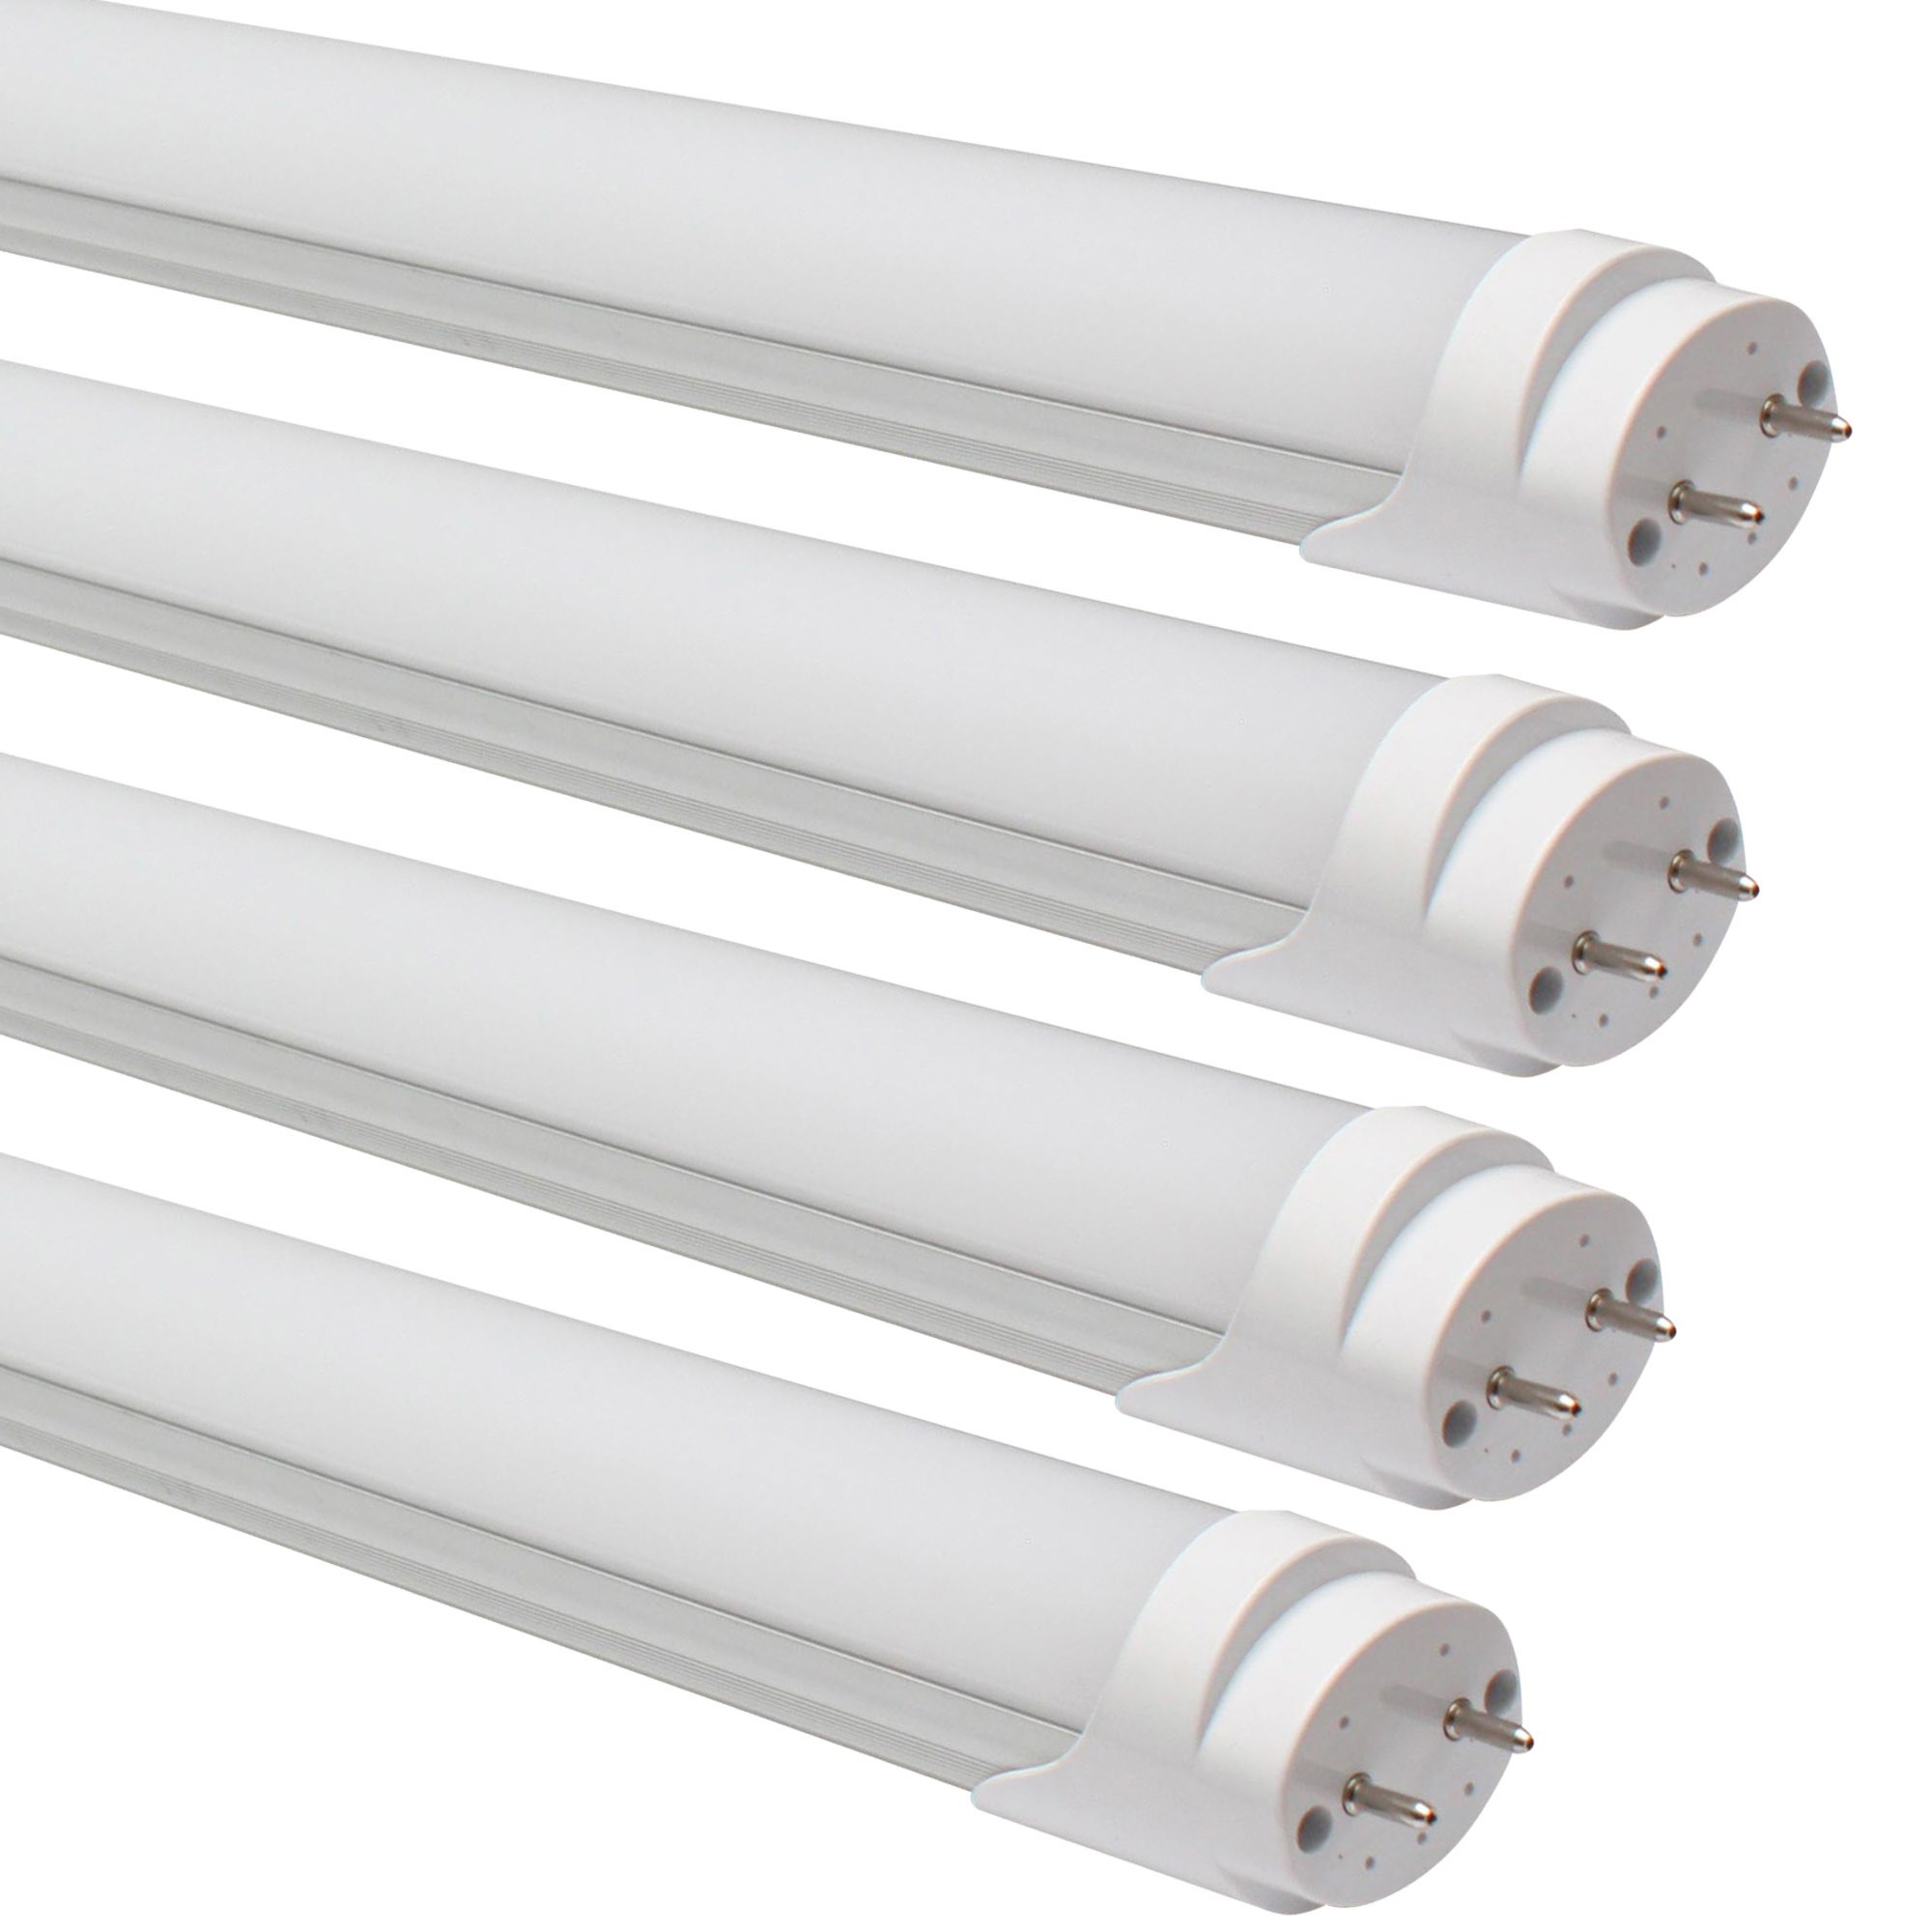 Led Tube 90cm, 13W, cold white, milky 4 pcs.